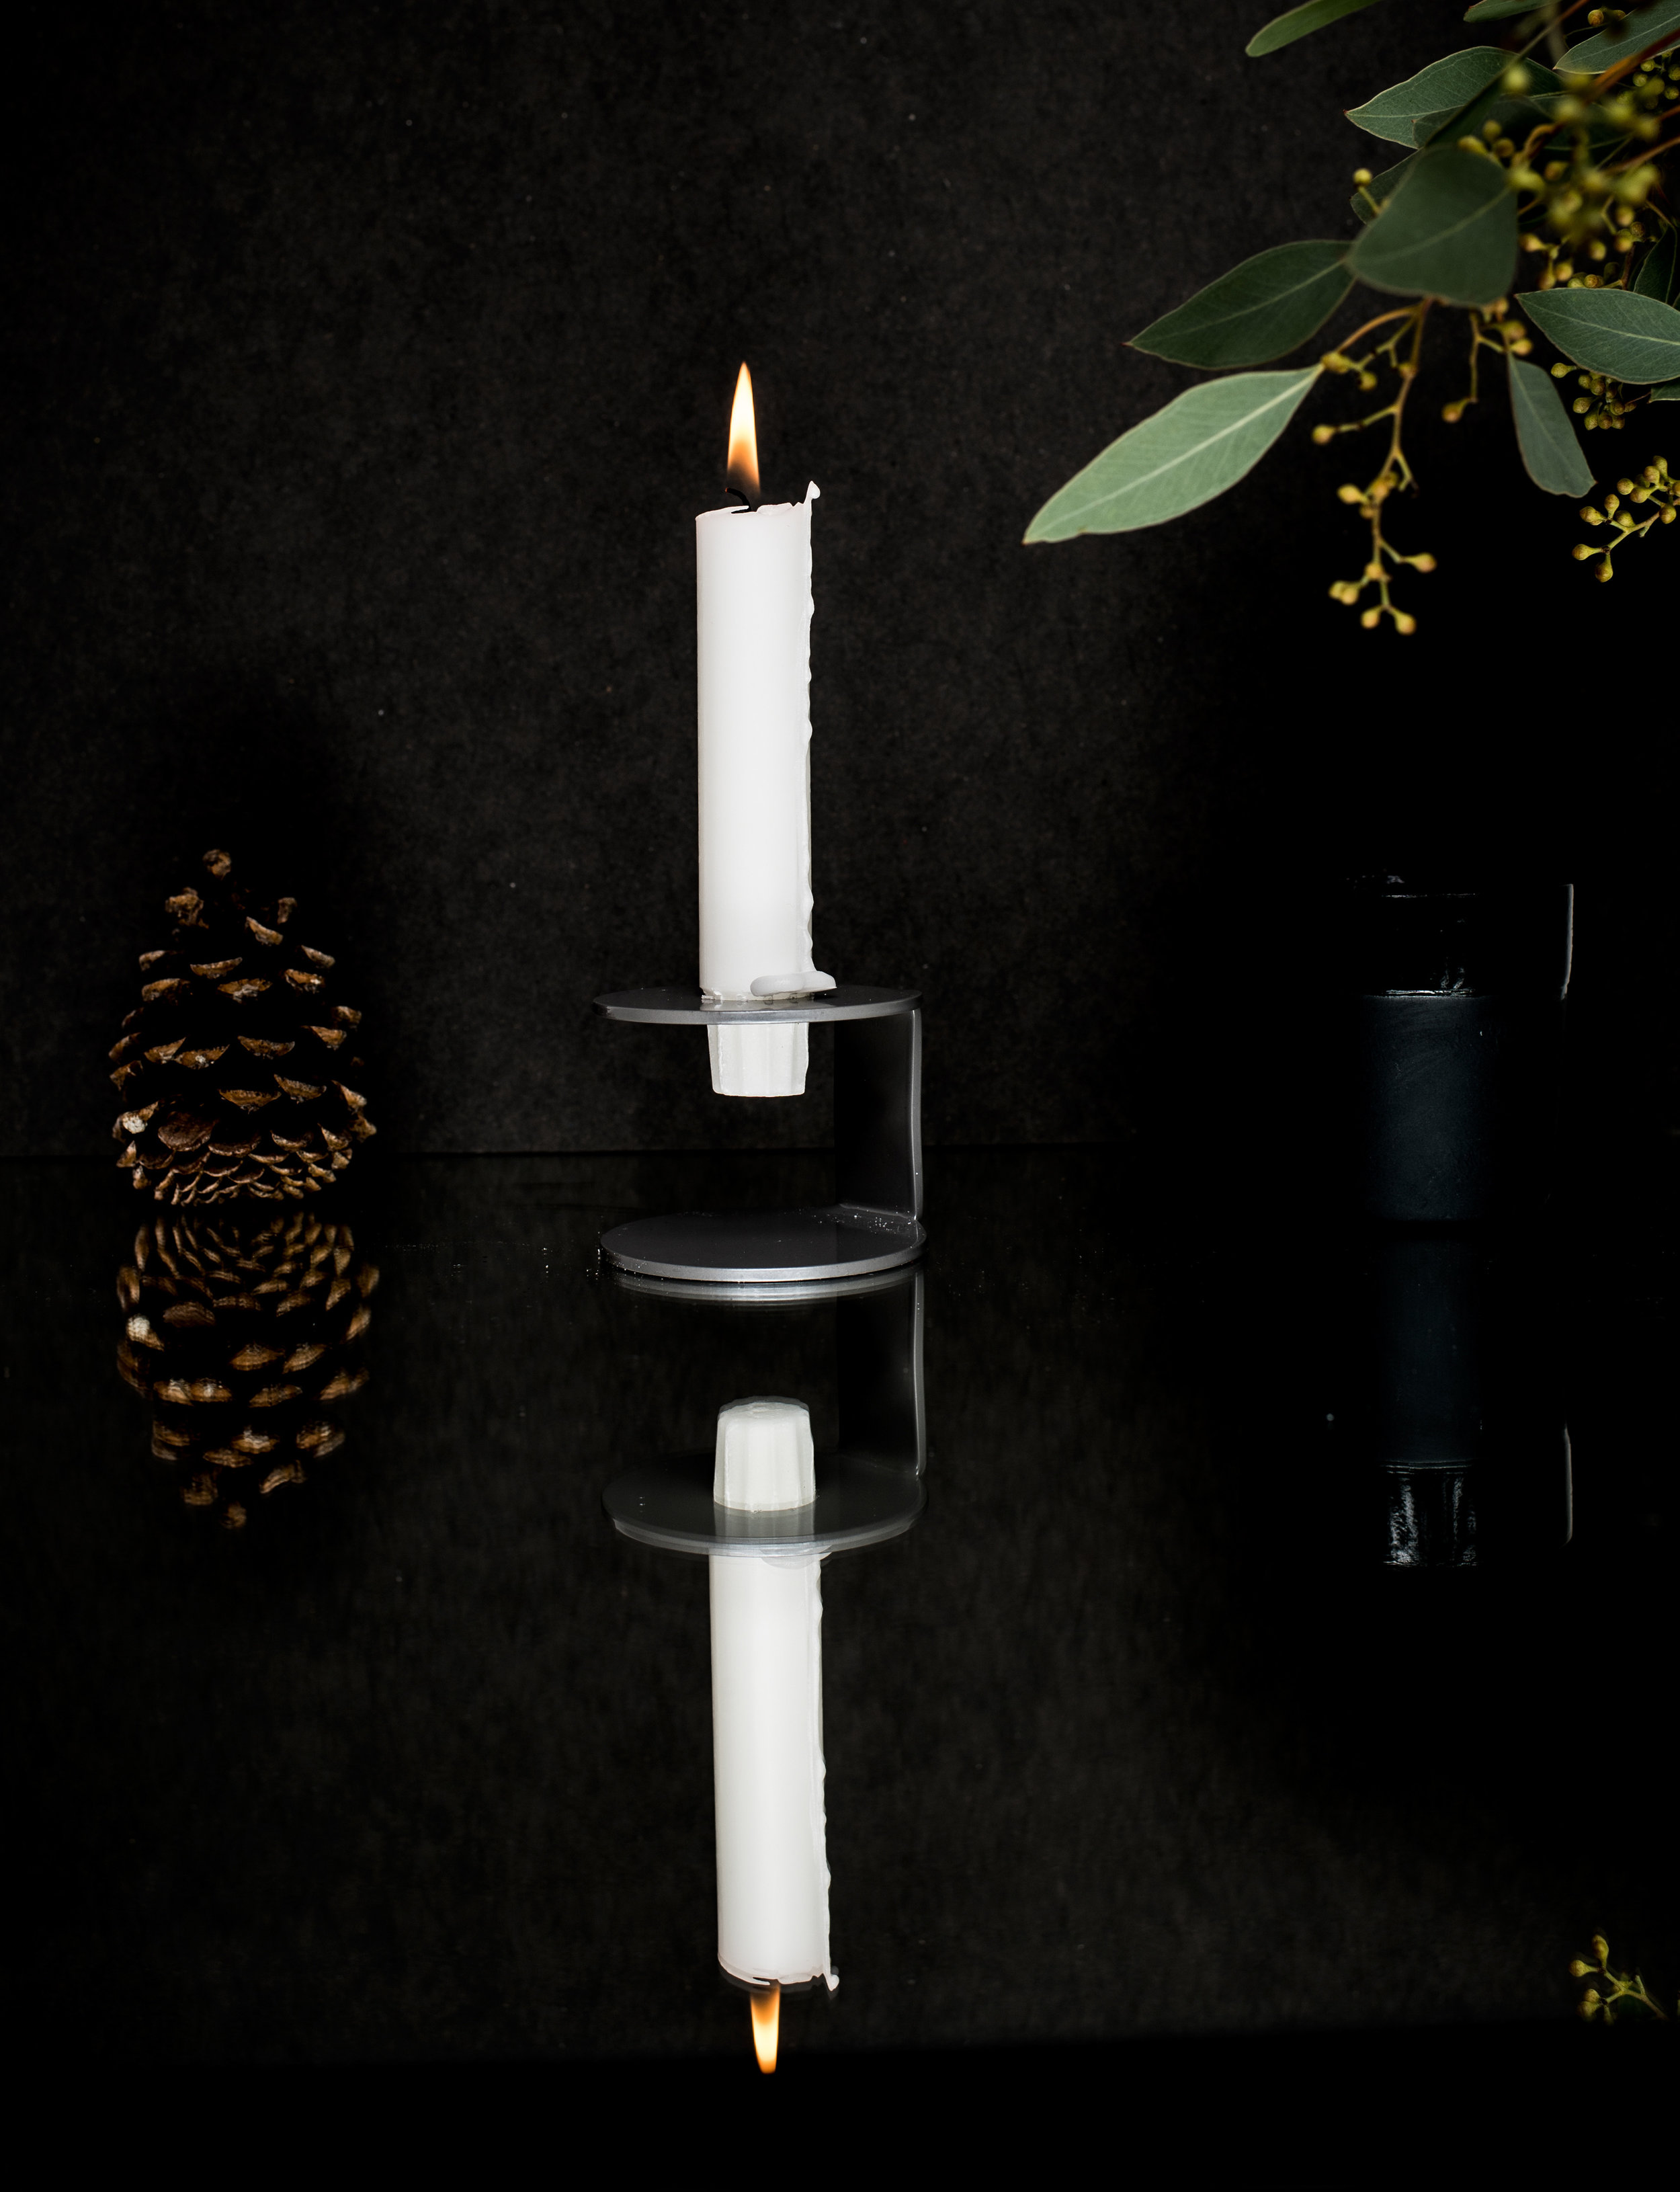 The new candle holder - FLIT - If you are searching for something minimalistic, stylish and practical you will love our new candle holder. Your new interior accessoire is available in seven different colors.